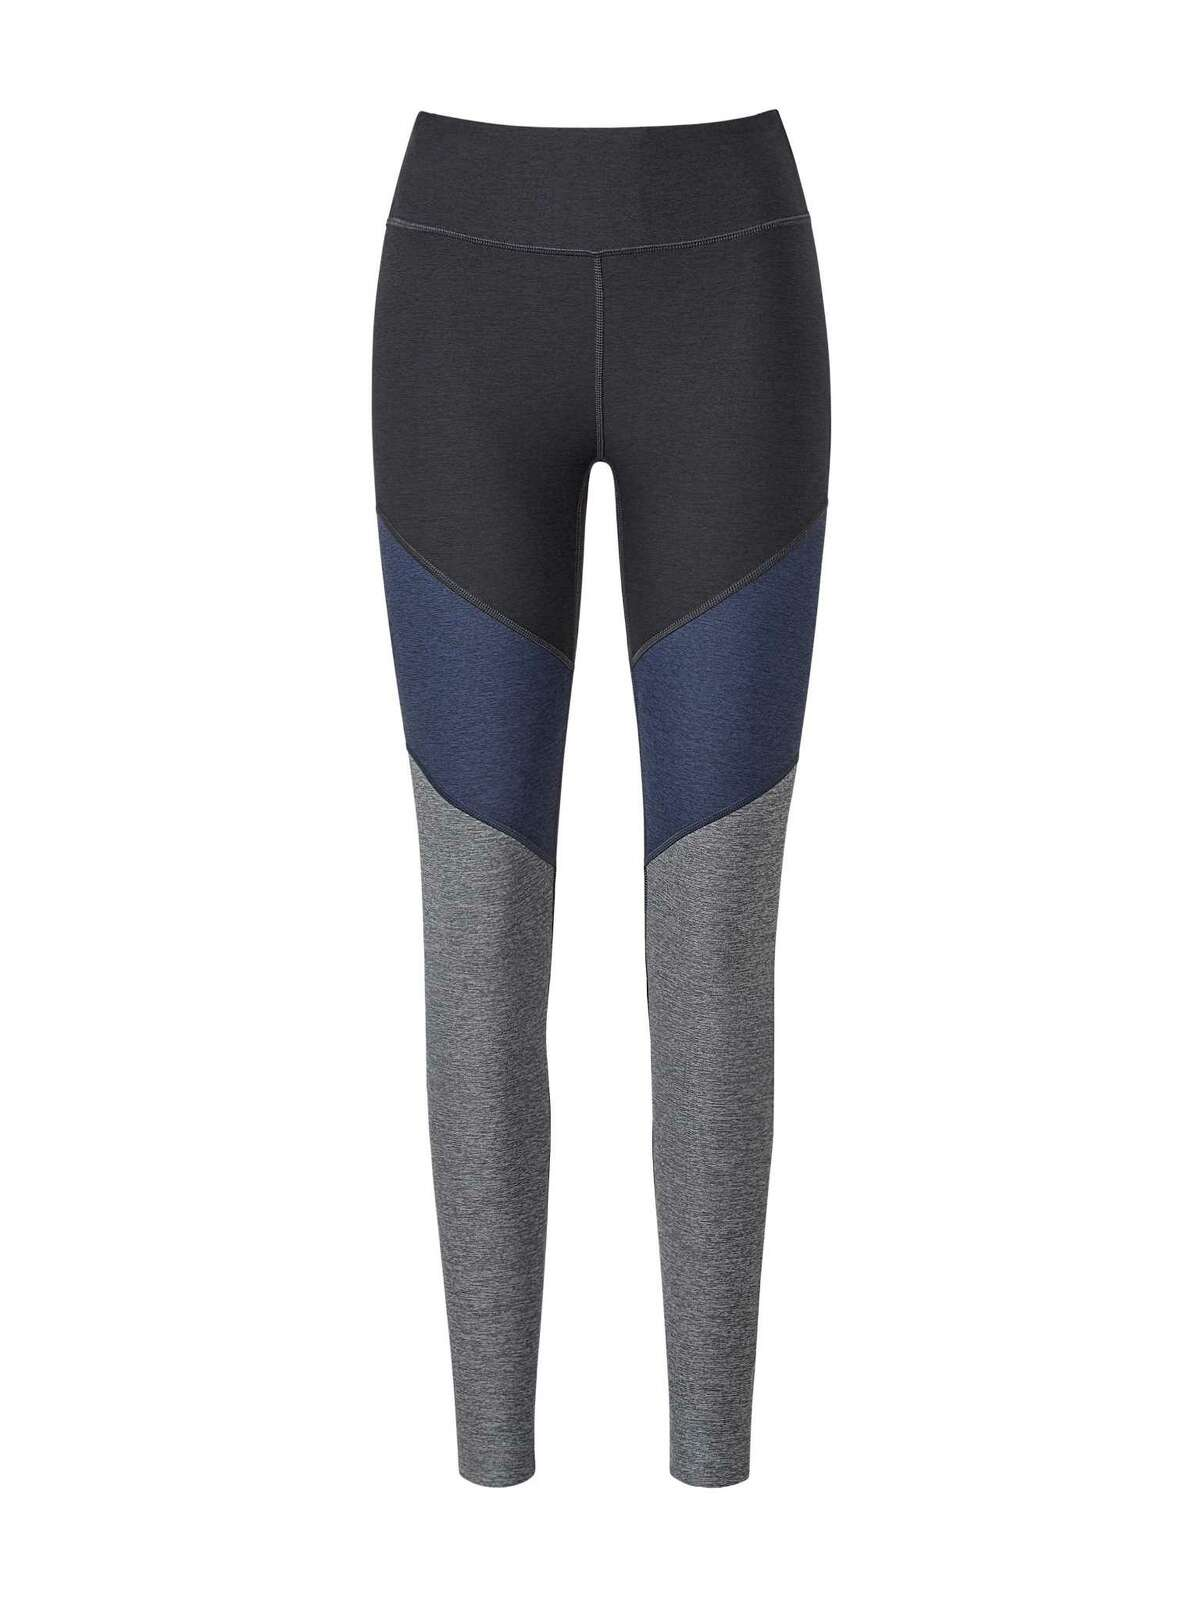 Springs leggings by Outdoor Voices, $85